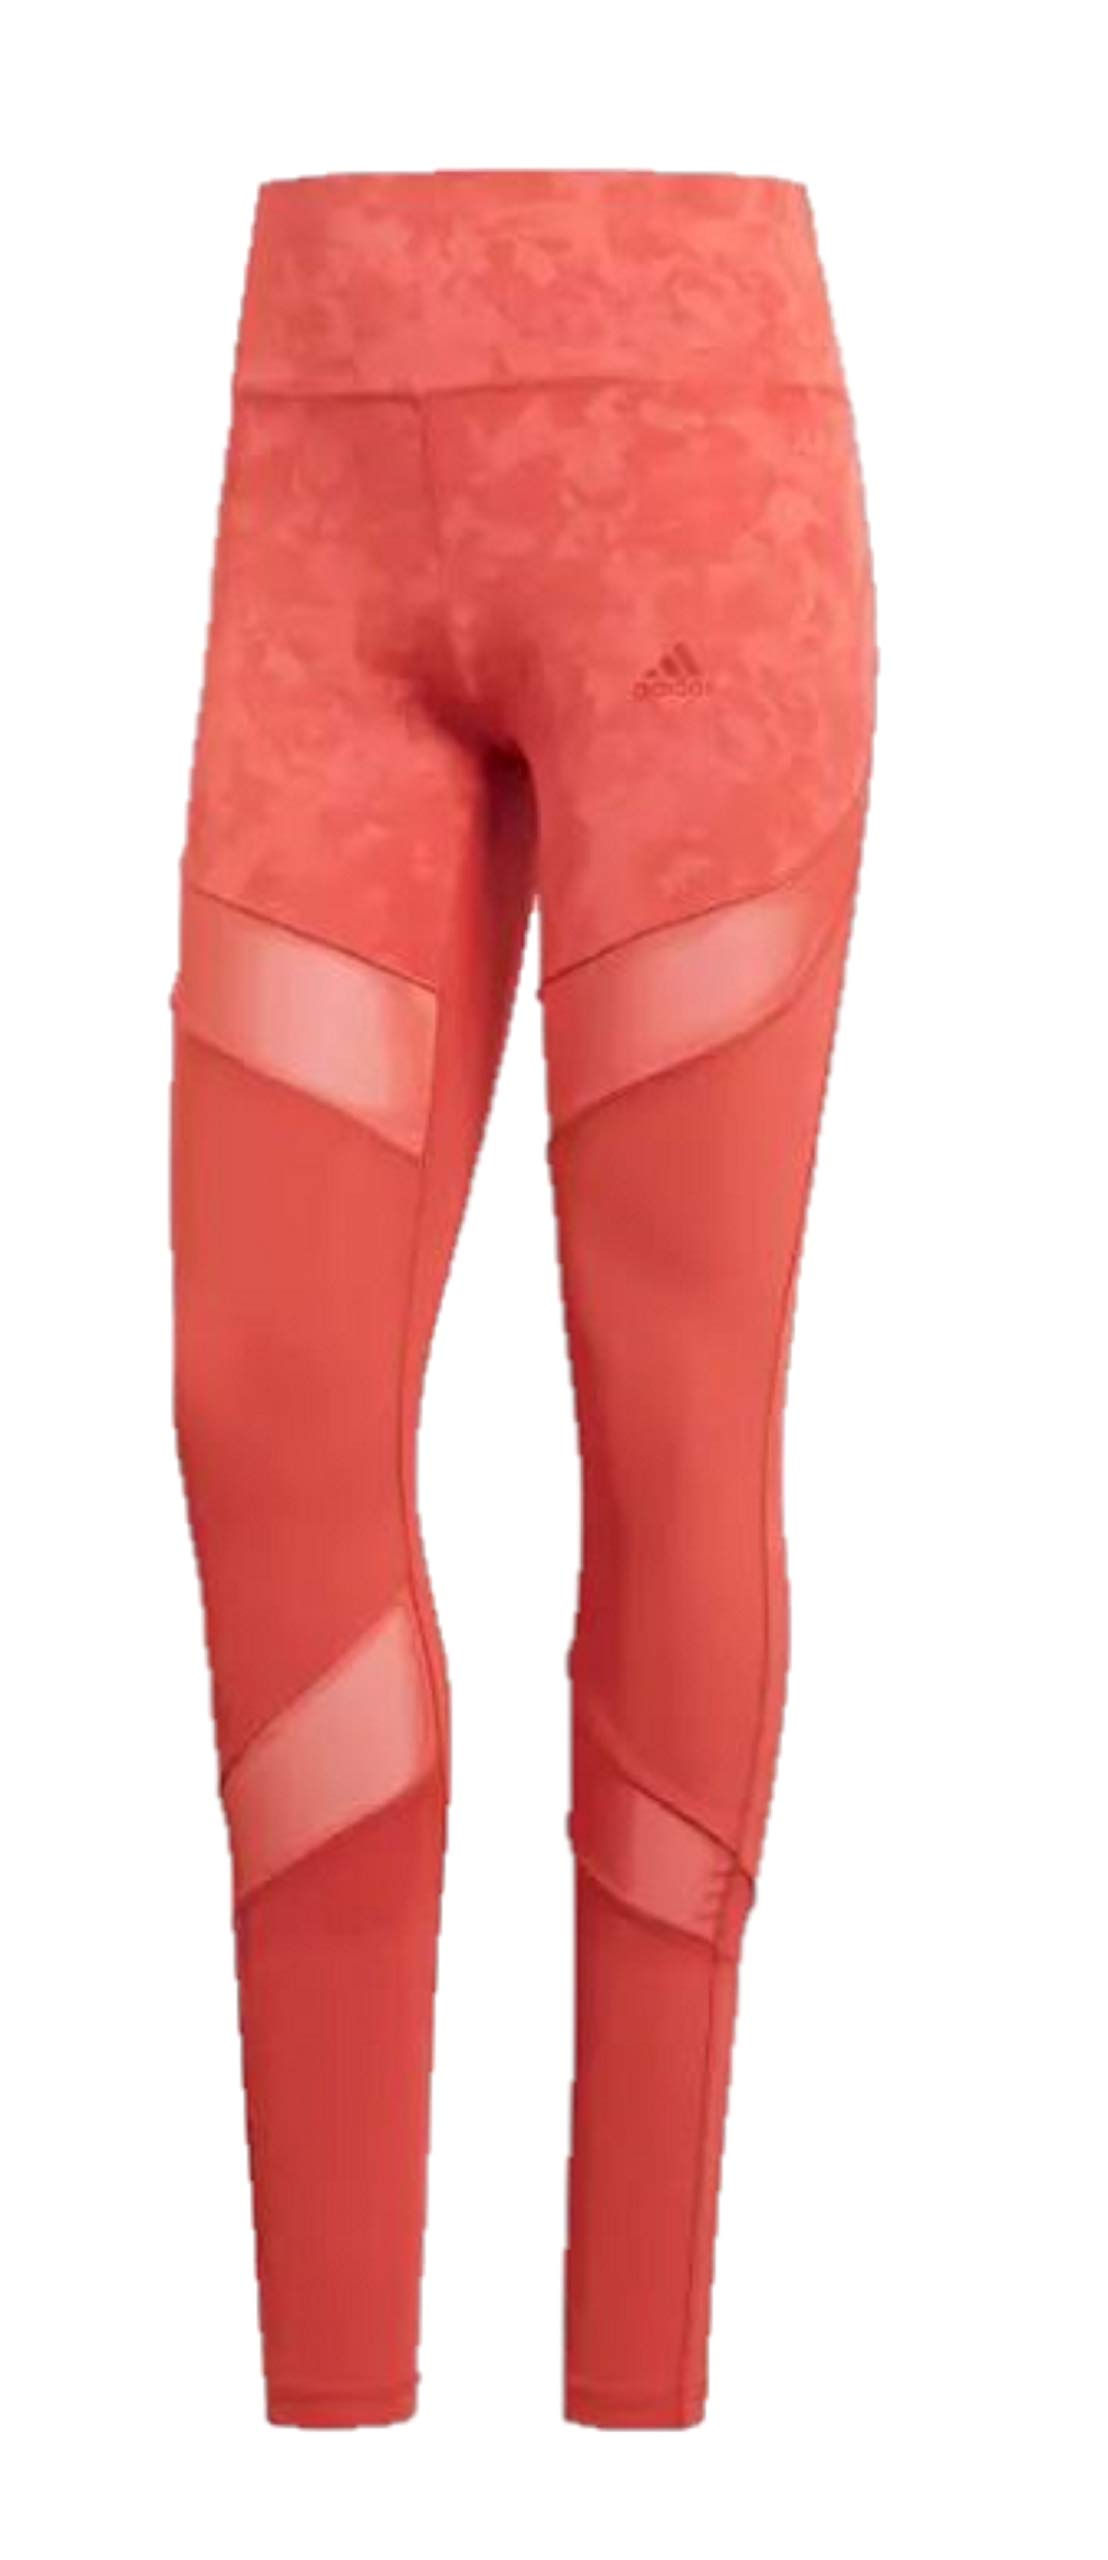 adidas Women's Climalite Ultimate High Rise Printed Long Tights, Trace Scarlet/Print, Small by adidas (Image #6)